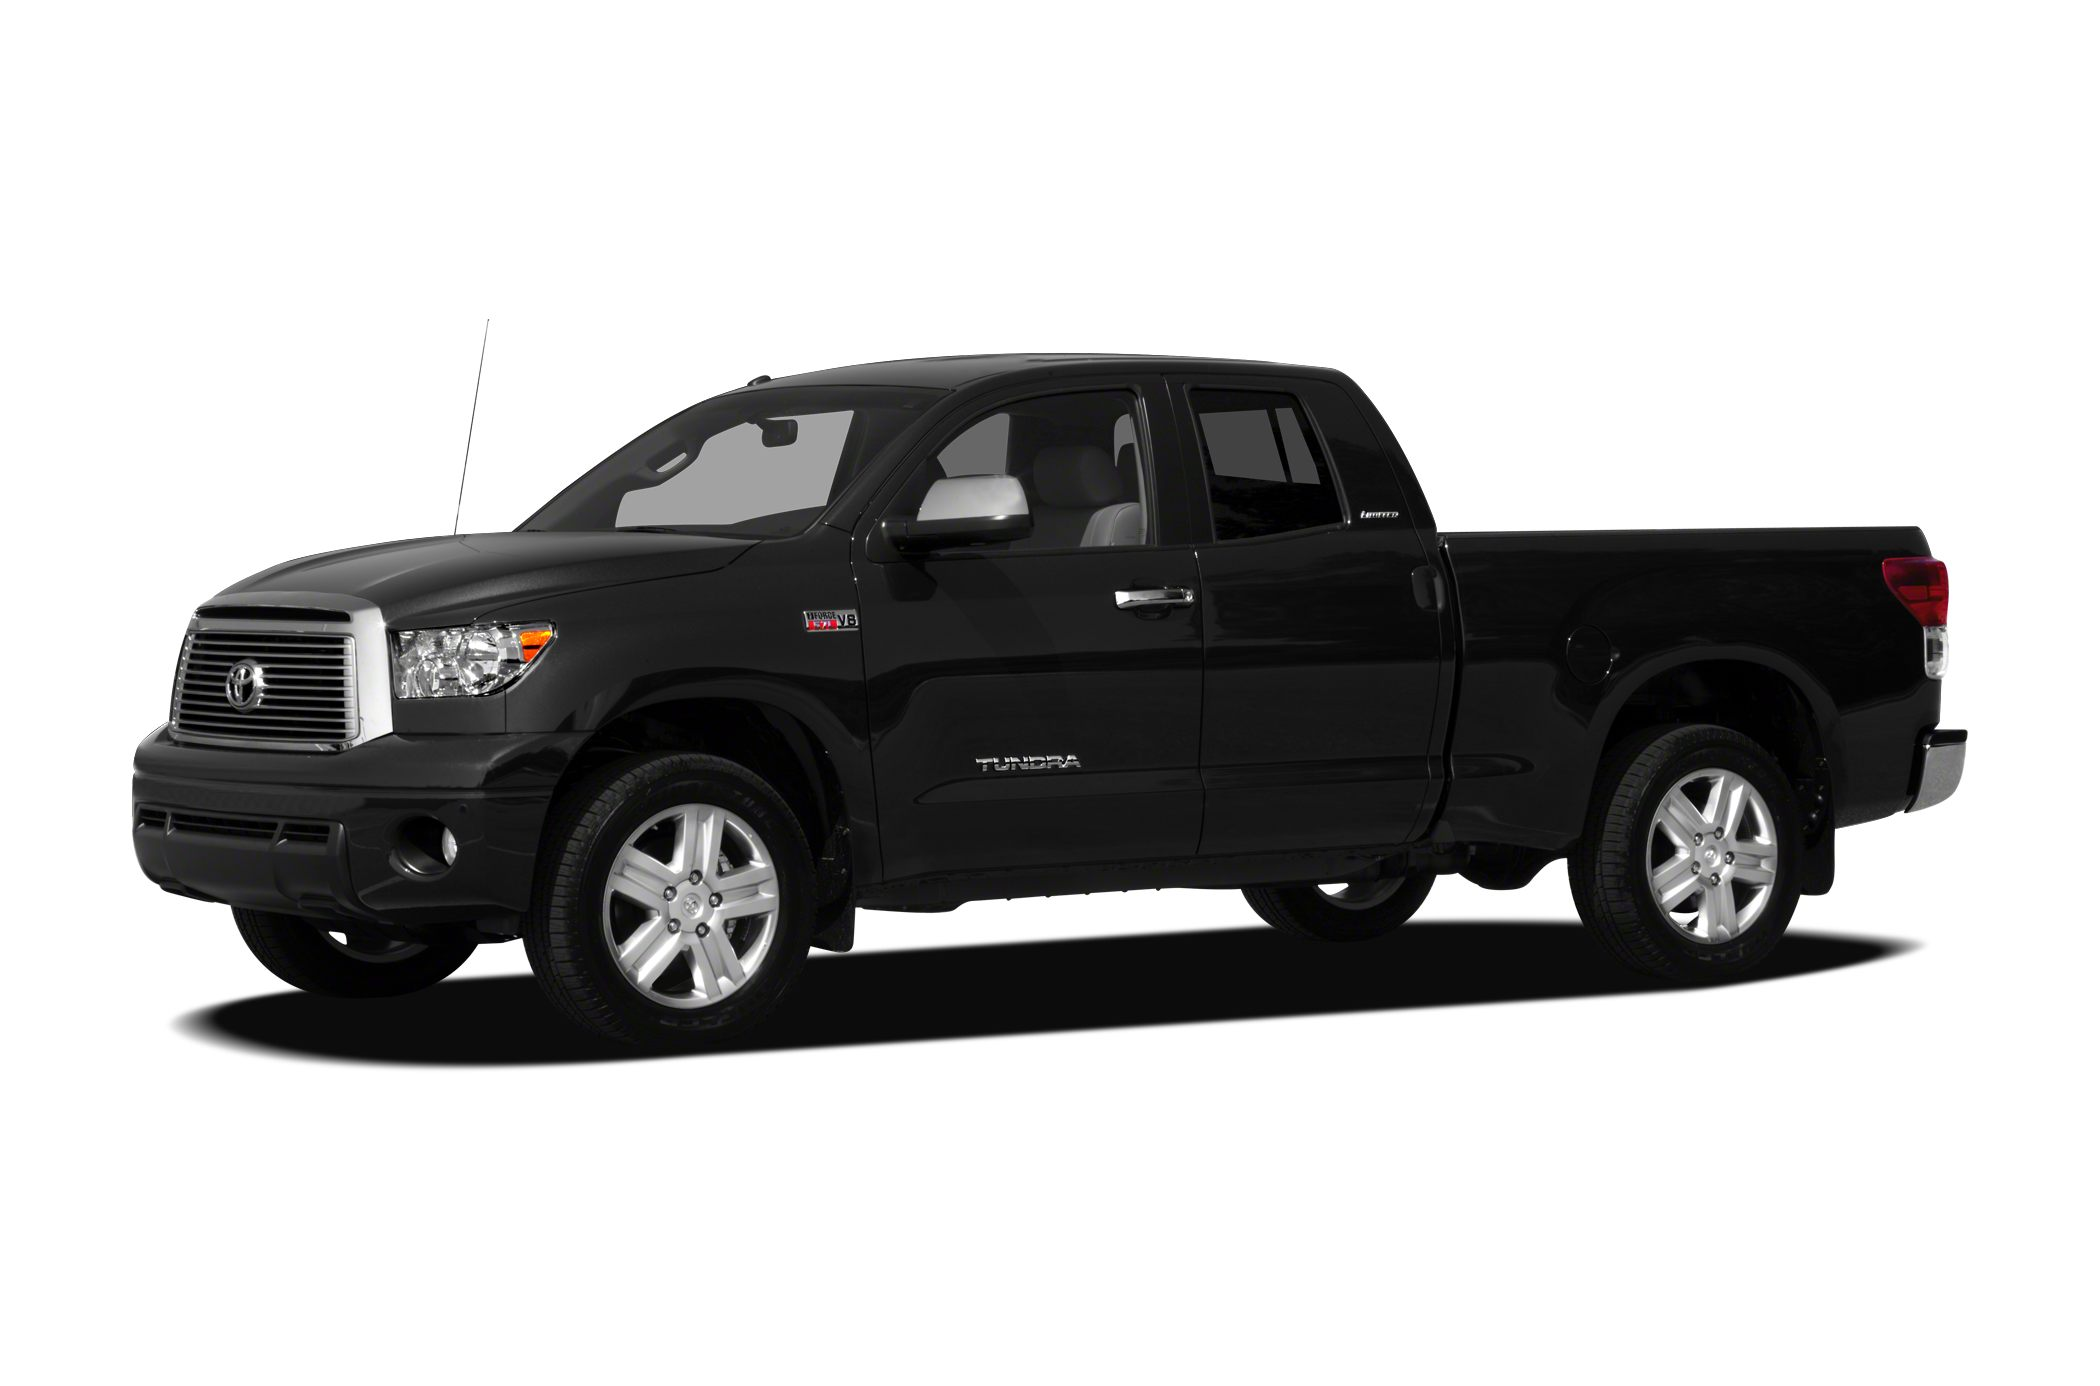 2012 Toyota Tundra Grade Tundra trim CARFAX 1-Owner PRICED TO MOVE 700 below Kelley Blue Book